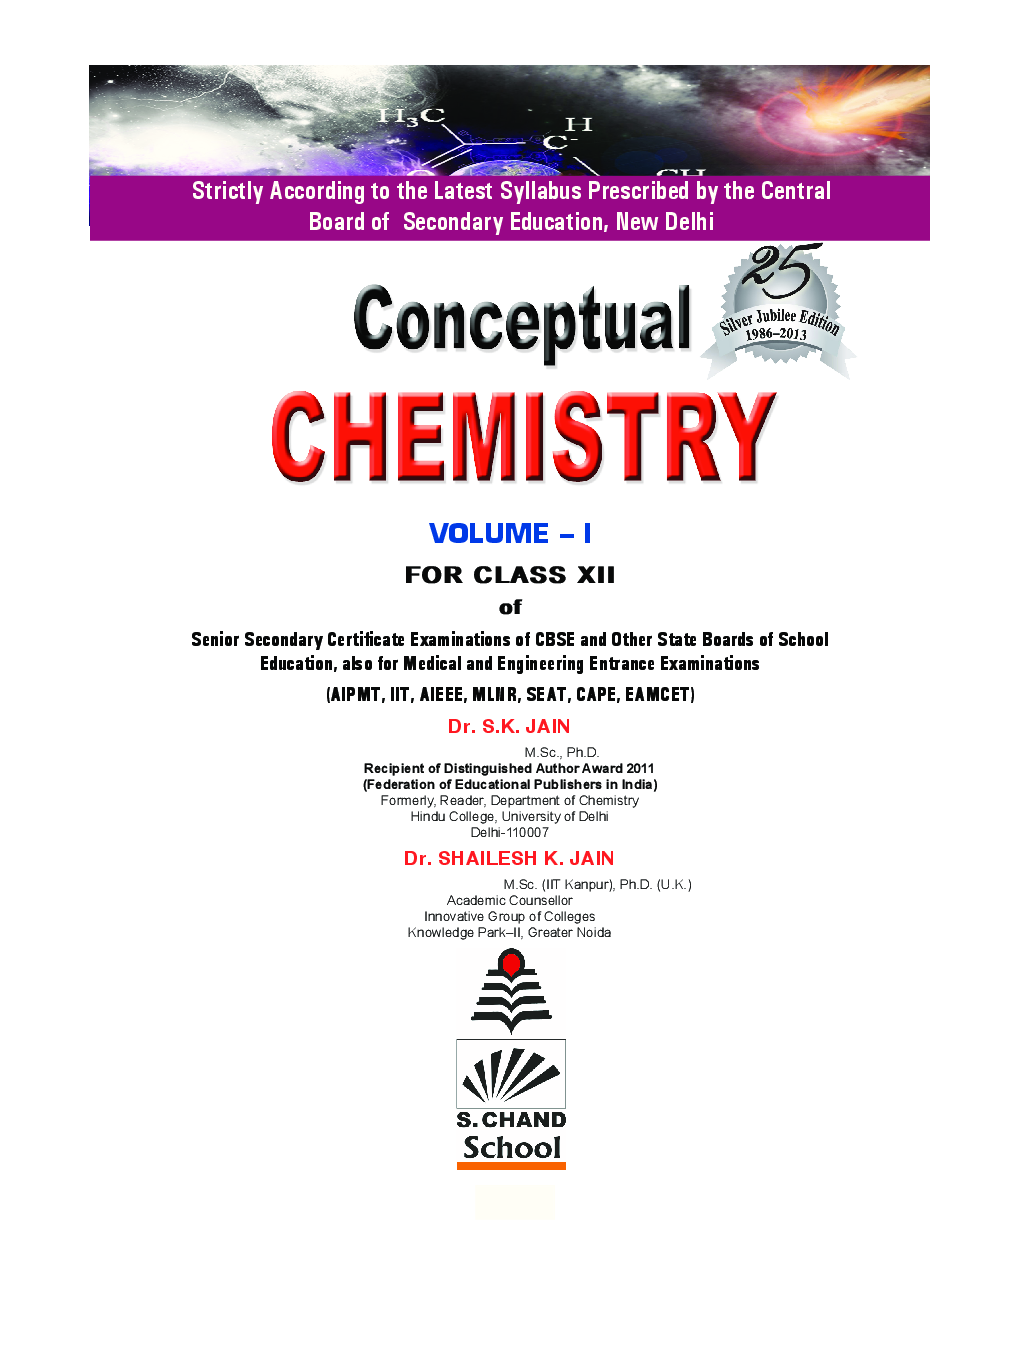 Conceptual chemistry volume 1 for class xii by s k jain and shailesh conceptual chemistry volume 1 for class xii by s k jain and shailesh k jain fandeluxe Choice Image